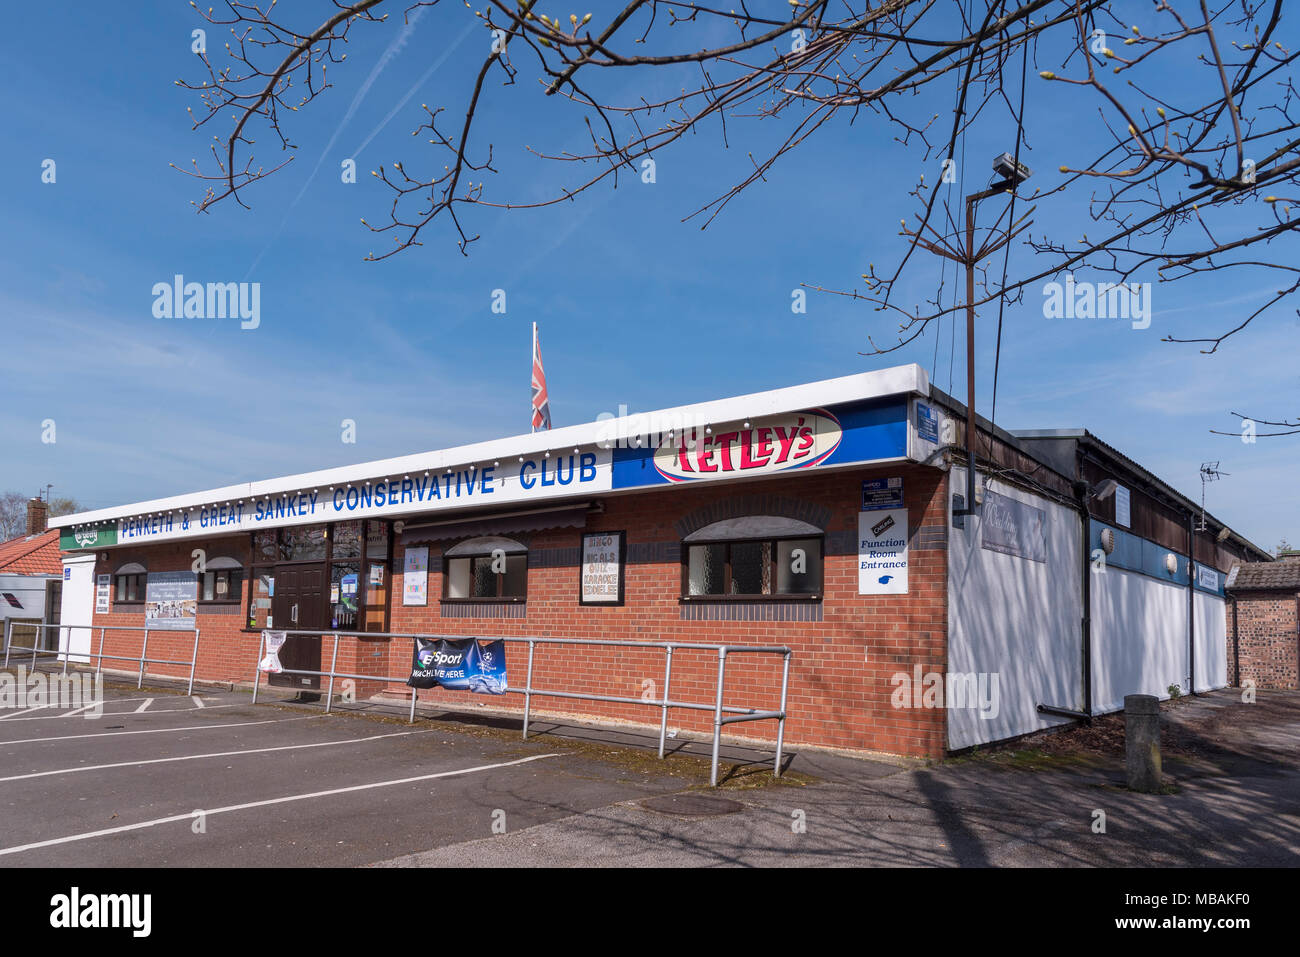 Penketh and Great Sankey Conservative club building Penketh. - Stock Image